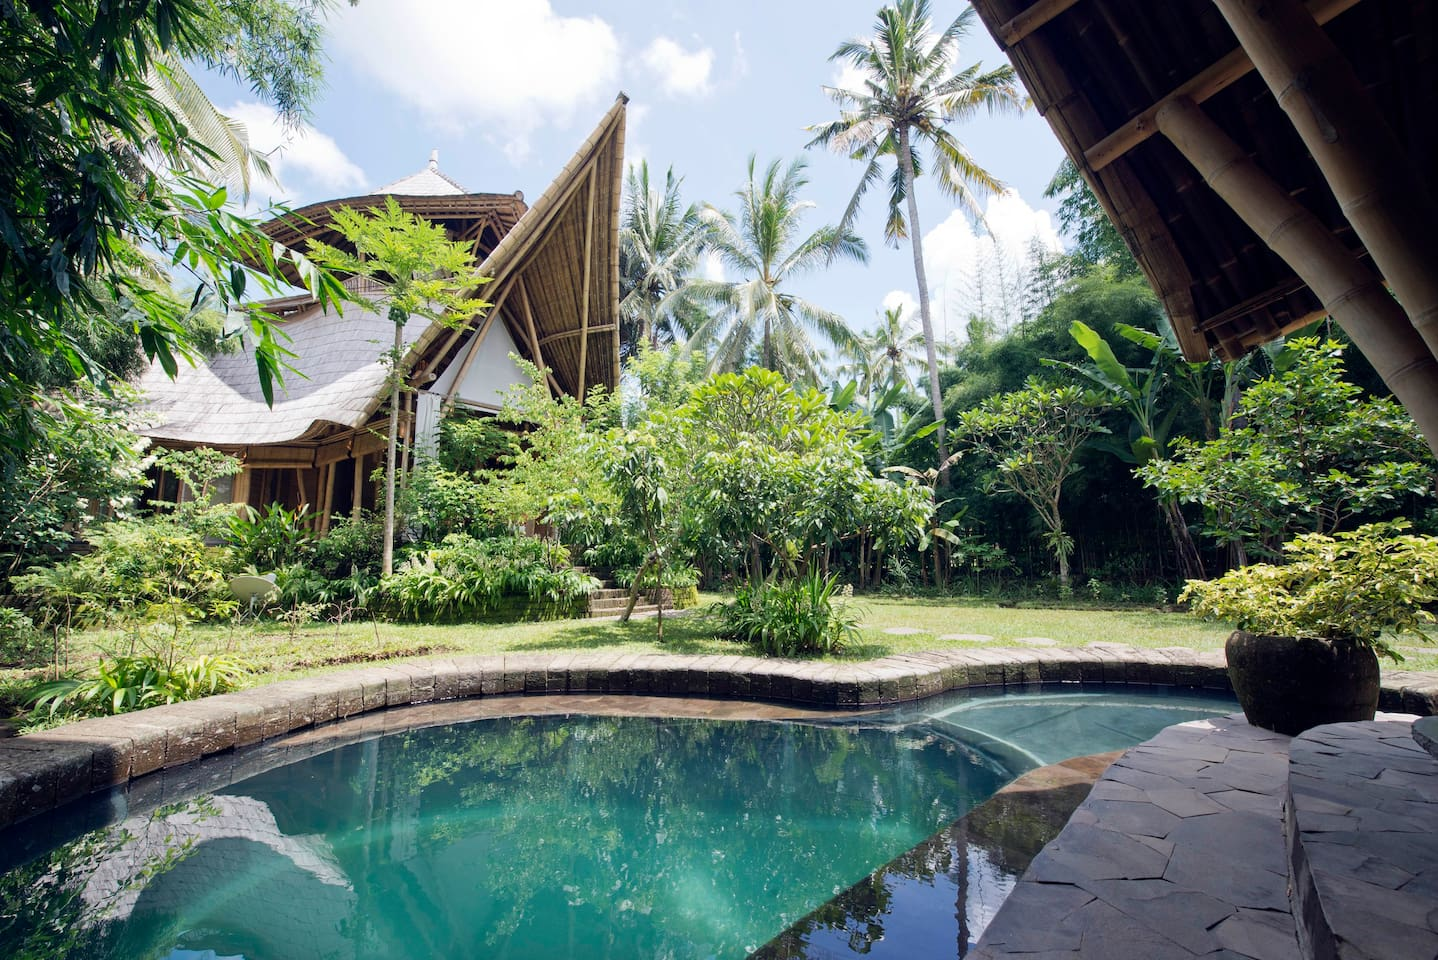 Bamboo 3 storey house surrounded by nature, and organic gardens with pool